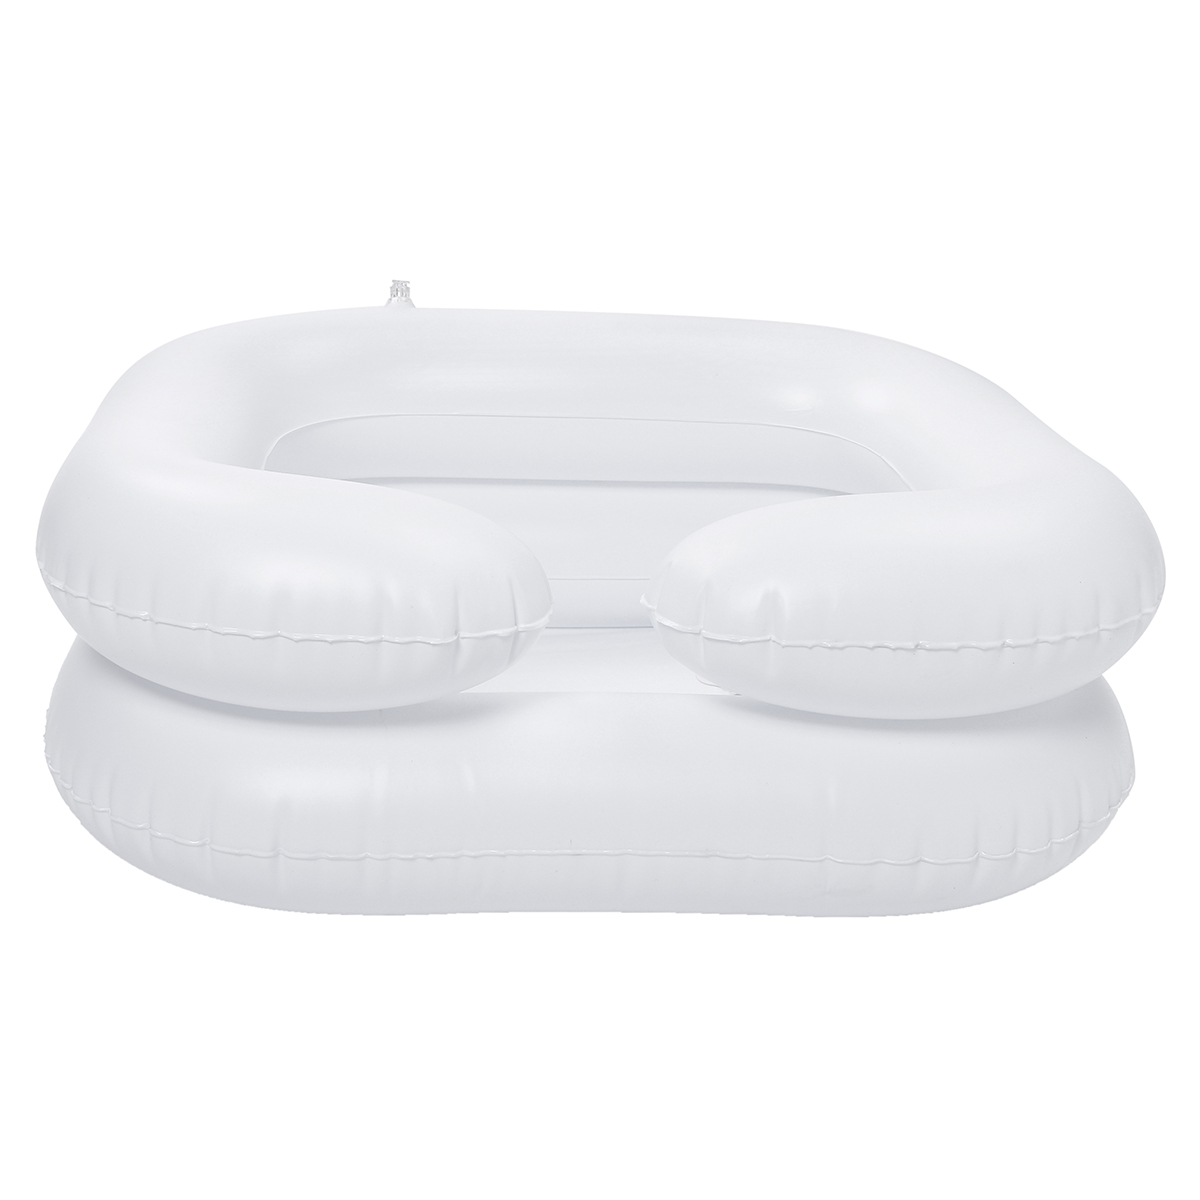 Inflatable Hair Washing Basin Salon Household Bed Rest